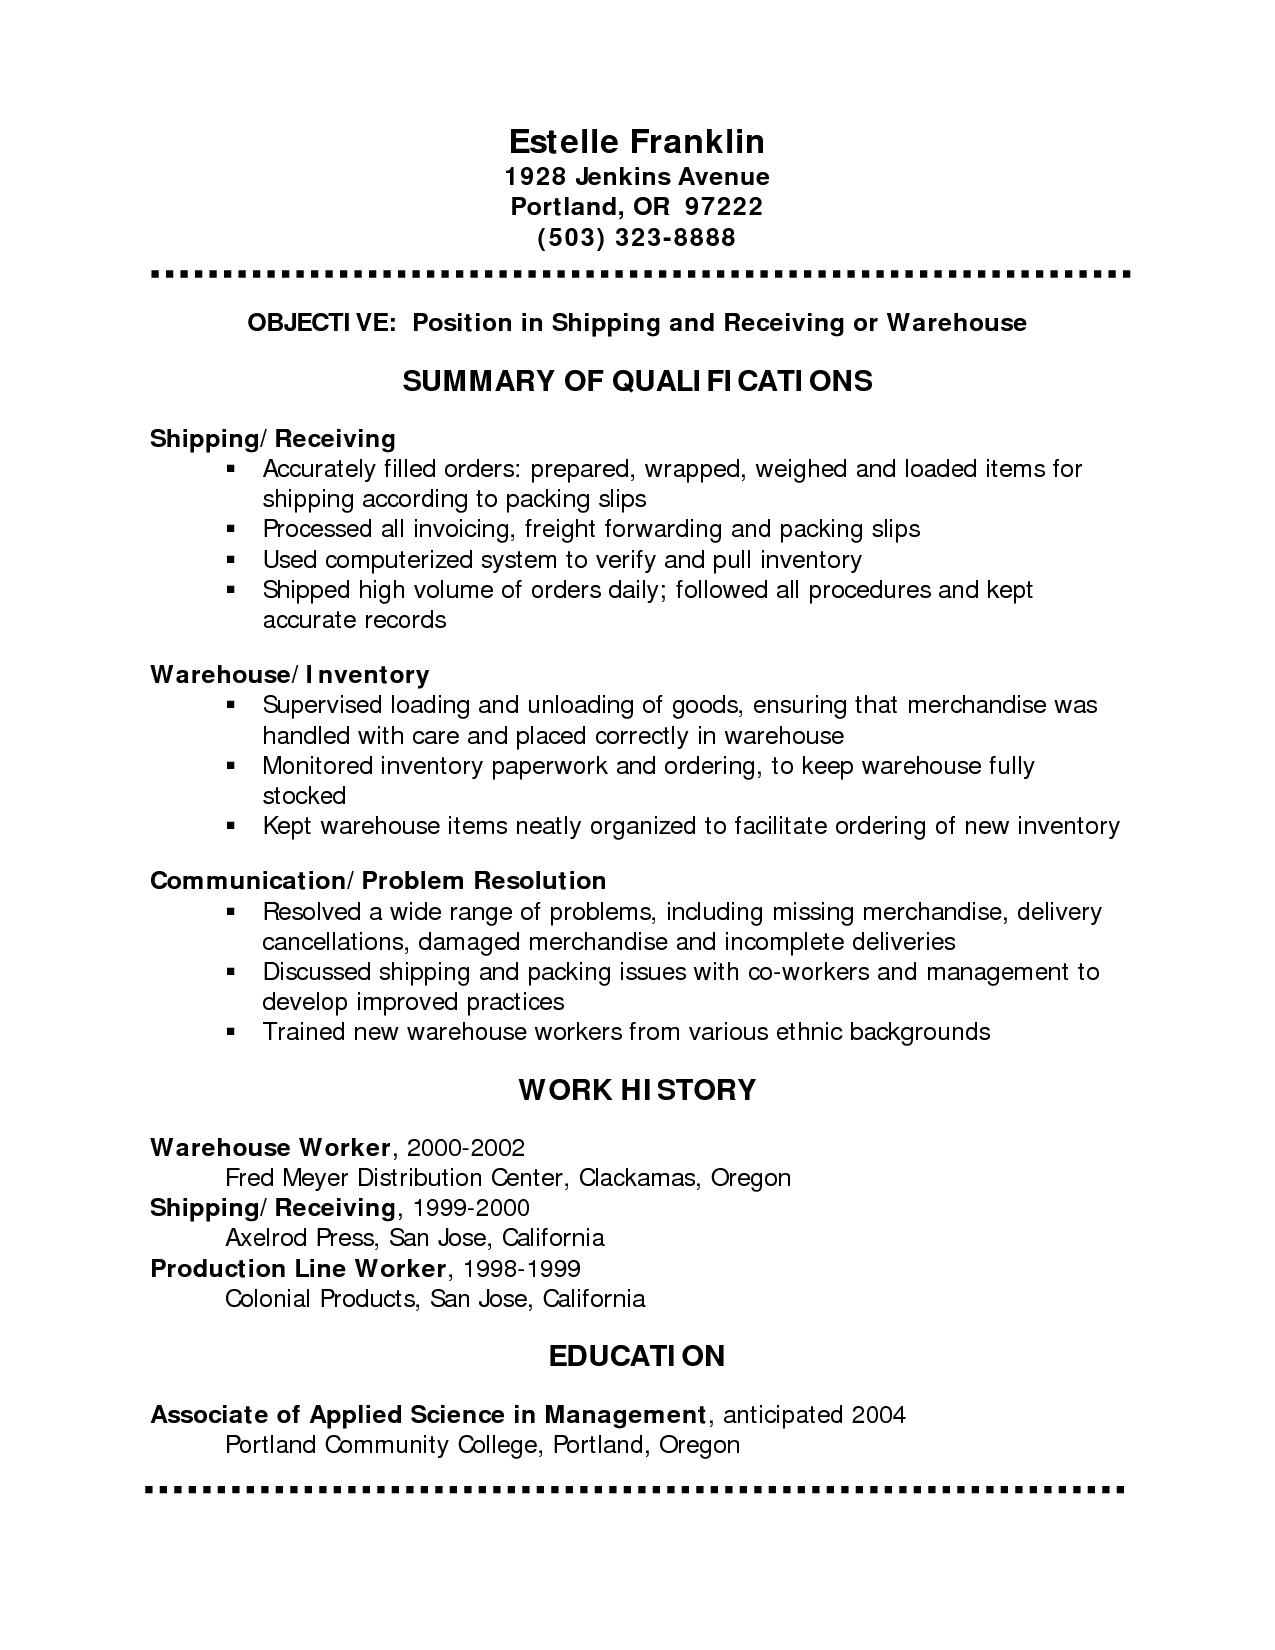 Charming Resume Examples Free Professional Templates Best Template Downloadable Within Resume Templates Examples Free